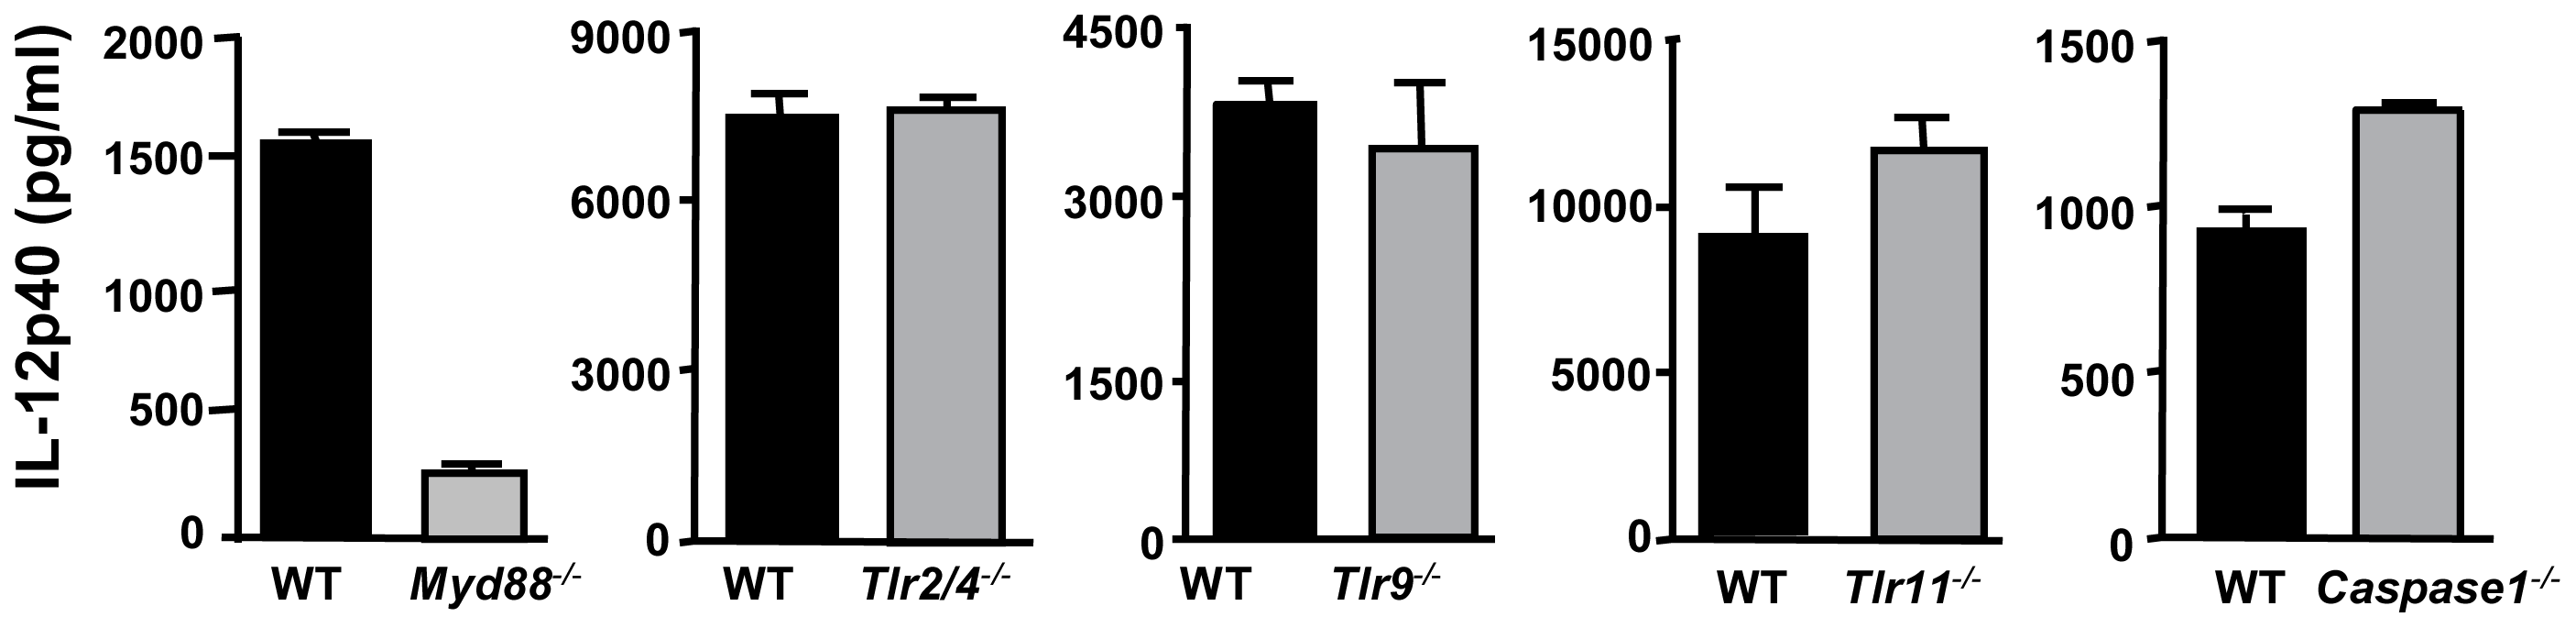 Induction of IL-12 by ΔROP16 tachyzoites requires MyD88, but occurs independently of TLR2, TLR4, TLR9, TLR11, and caspase-1.